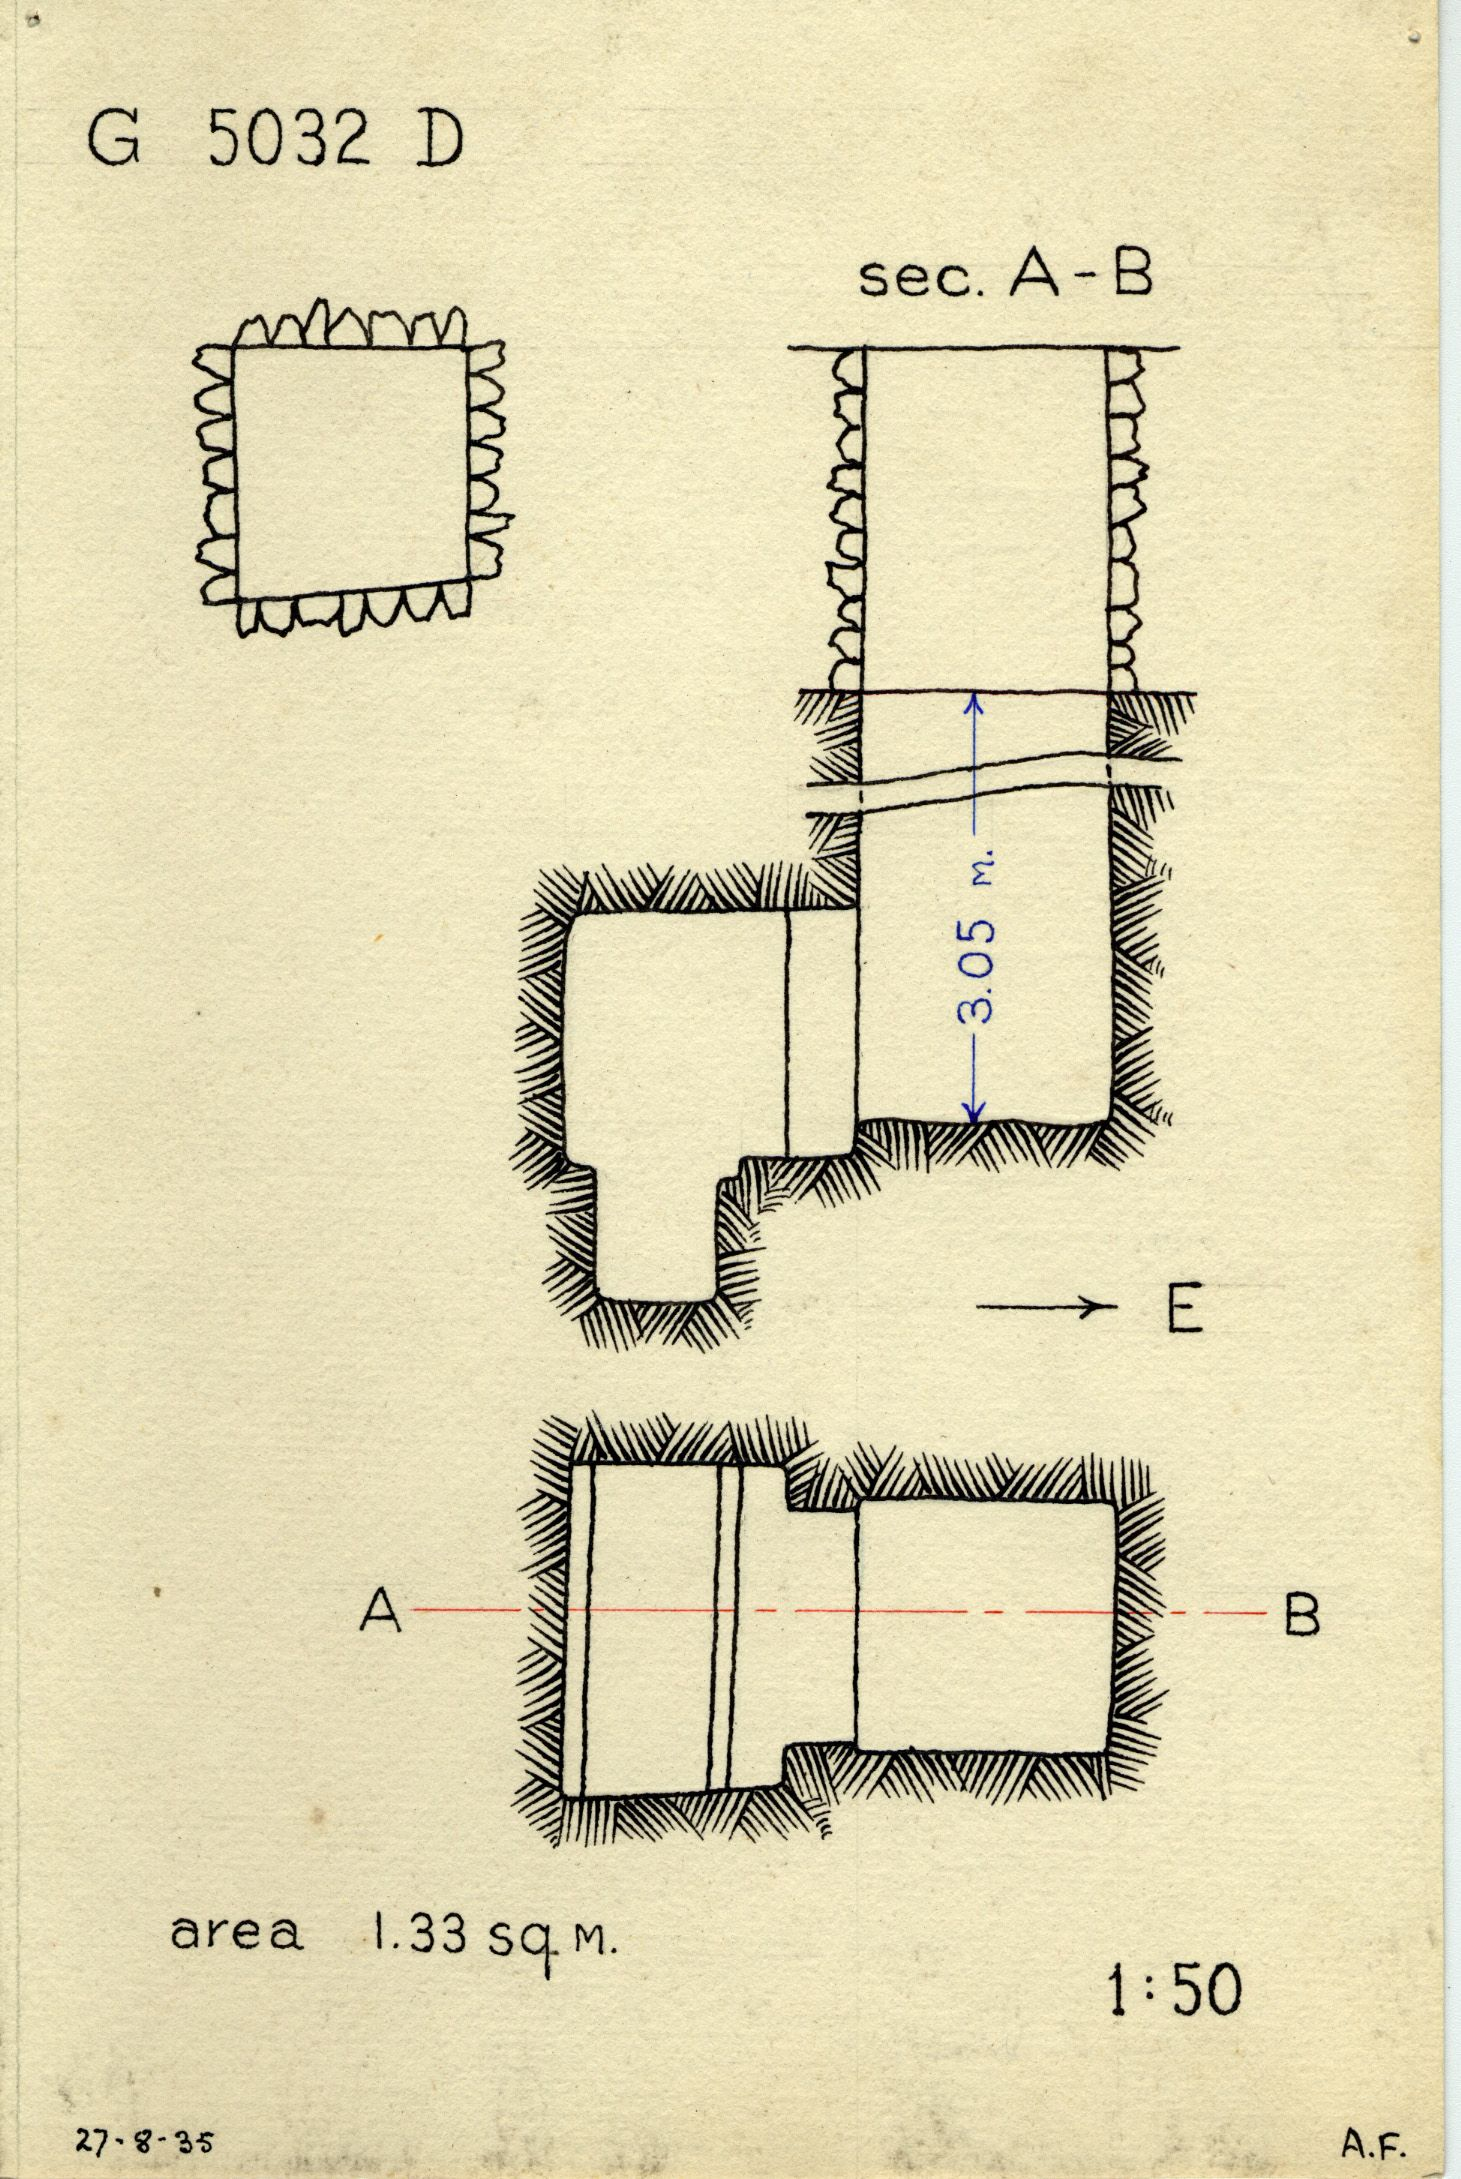 Maps and plans: G 5032, Shaft D